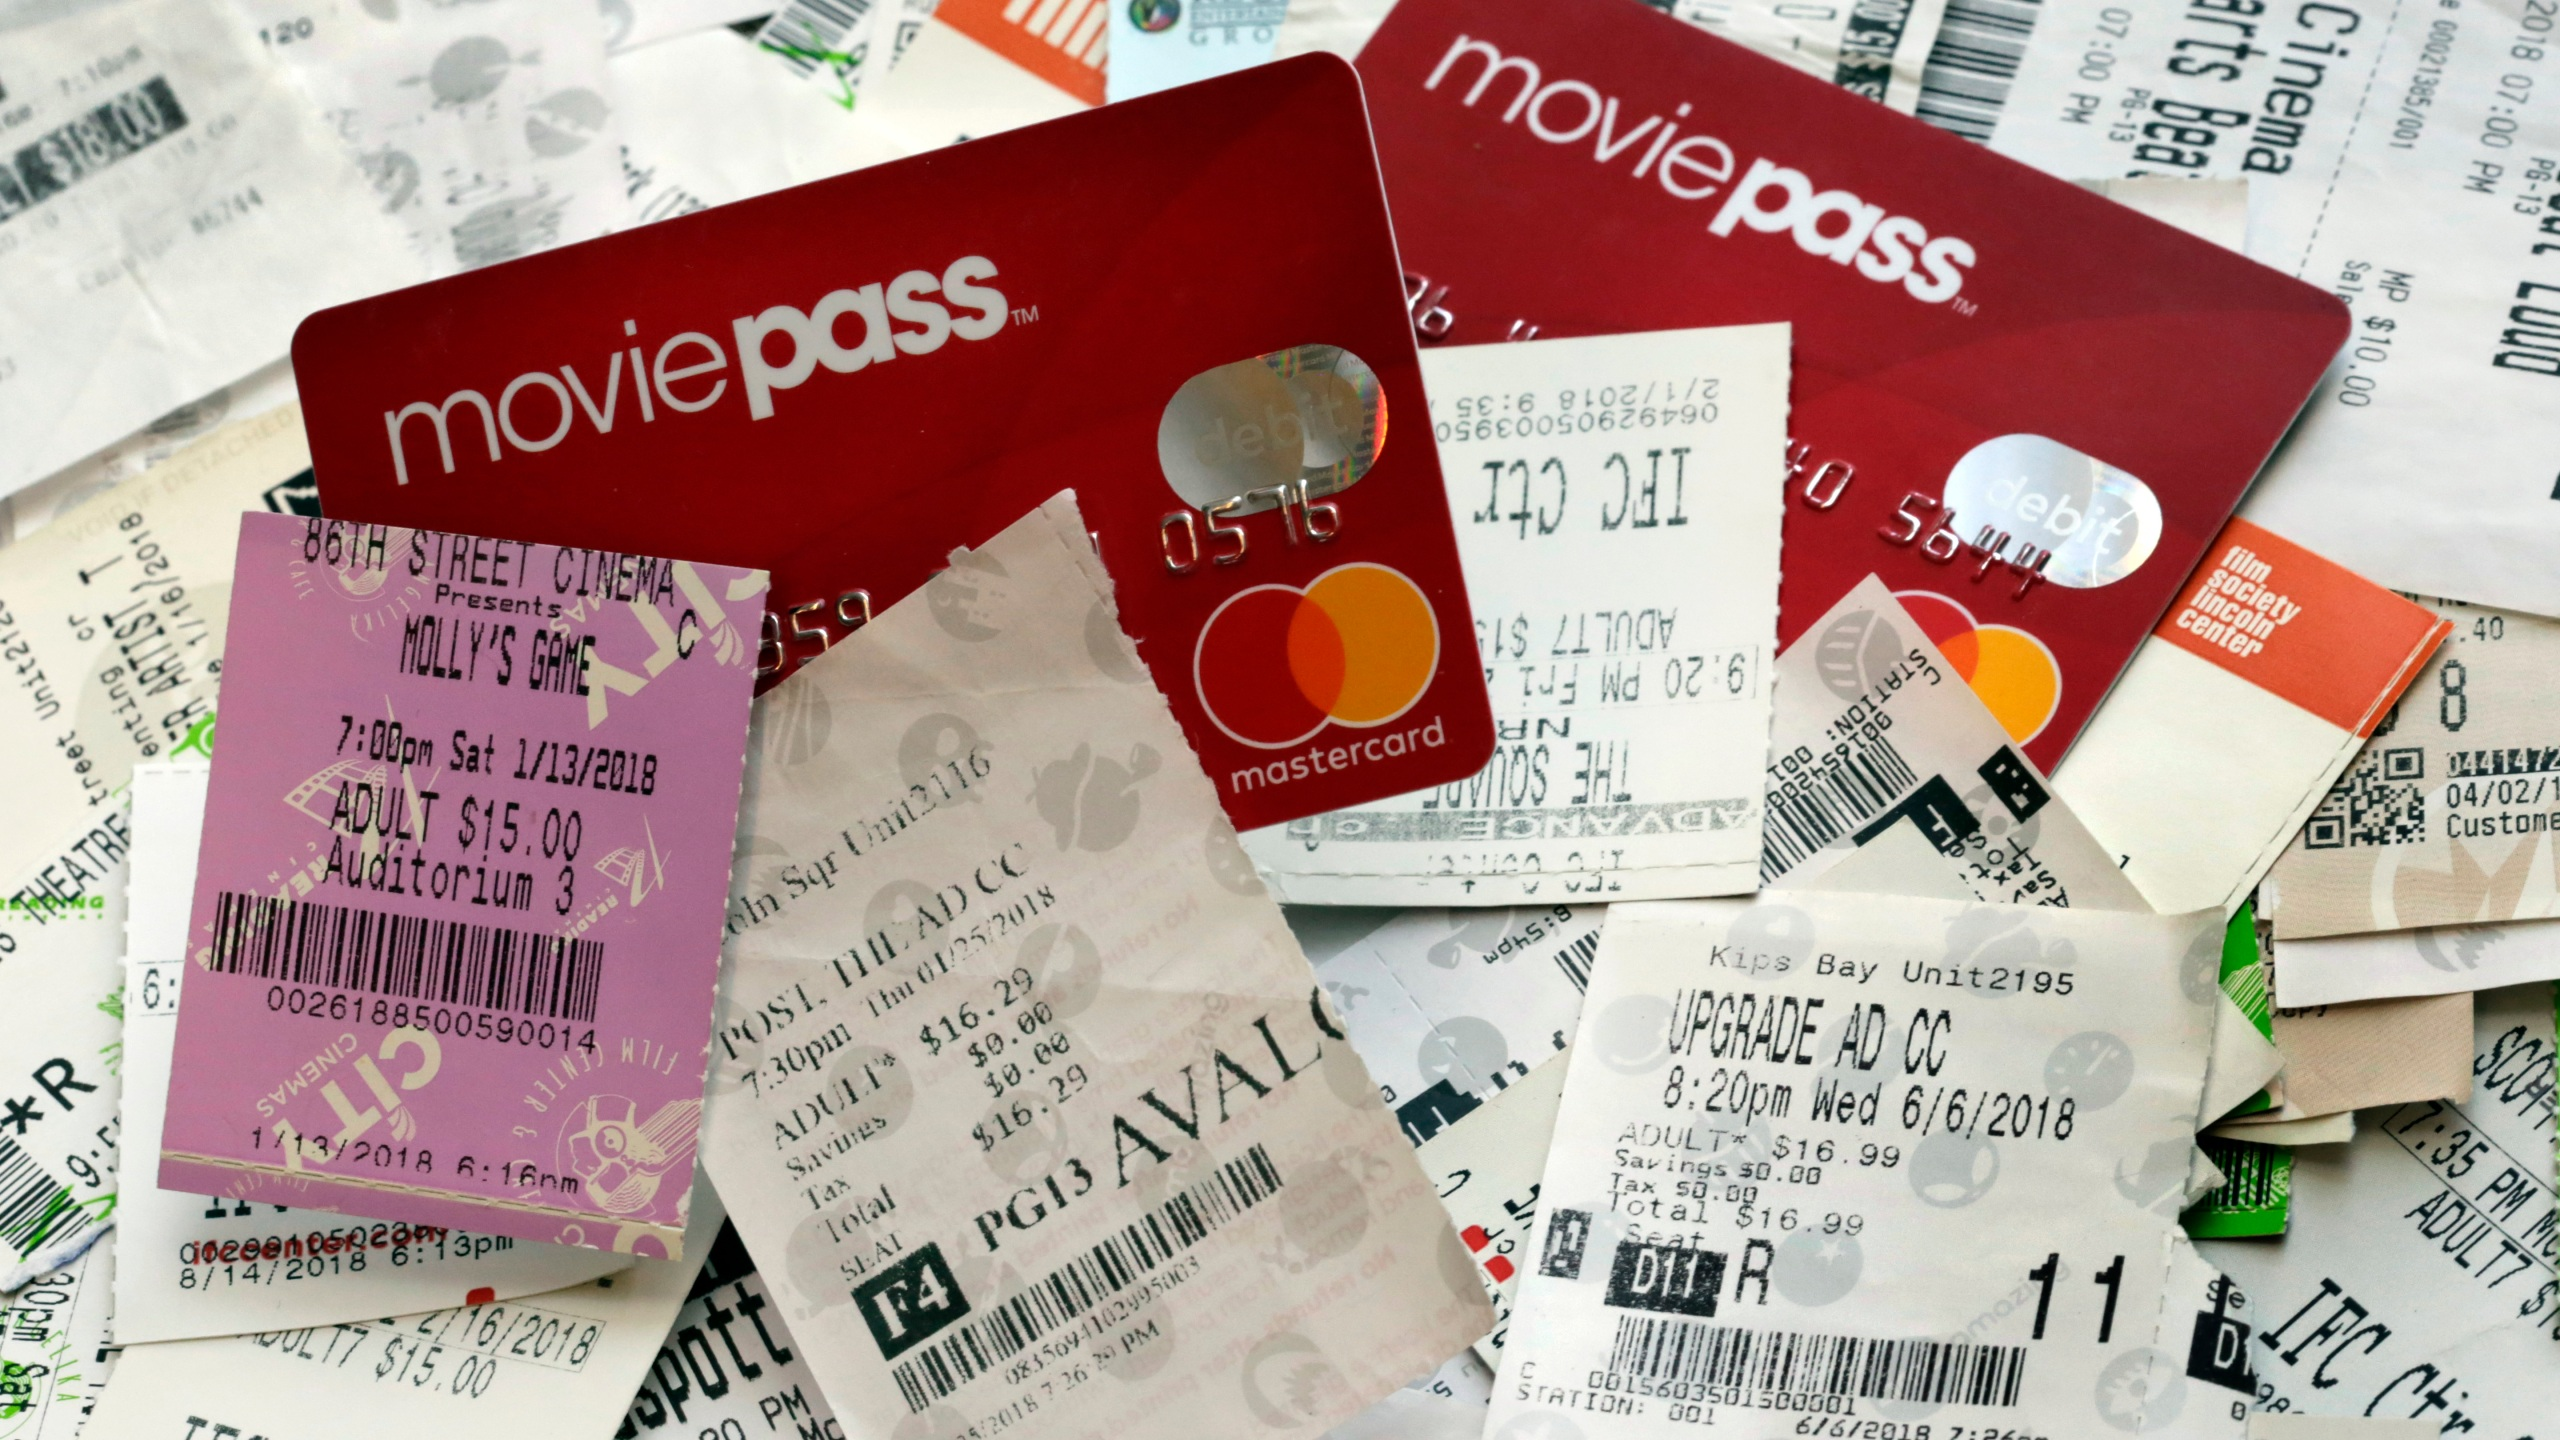 MoviePass Investigation_1539896915799